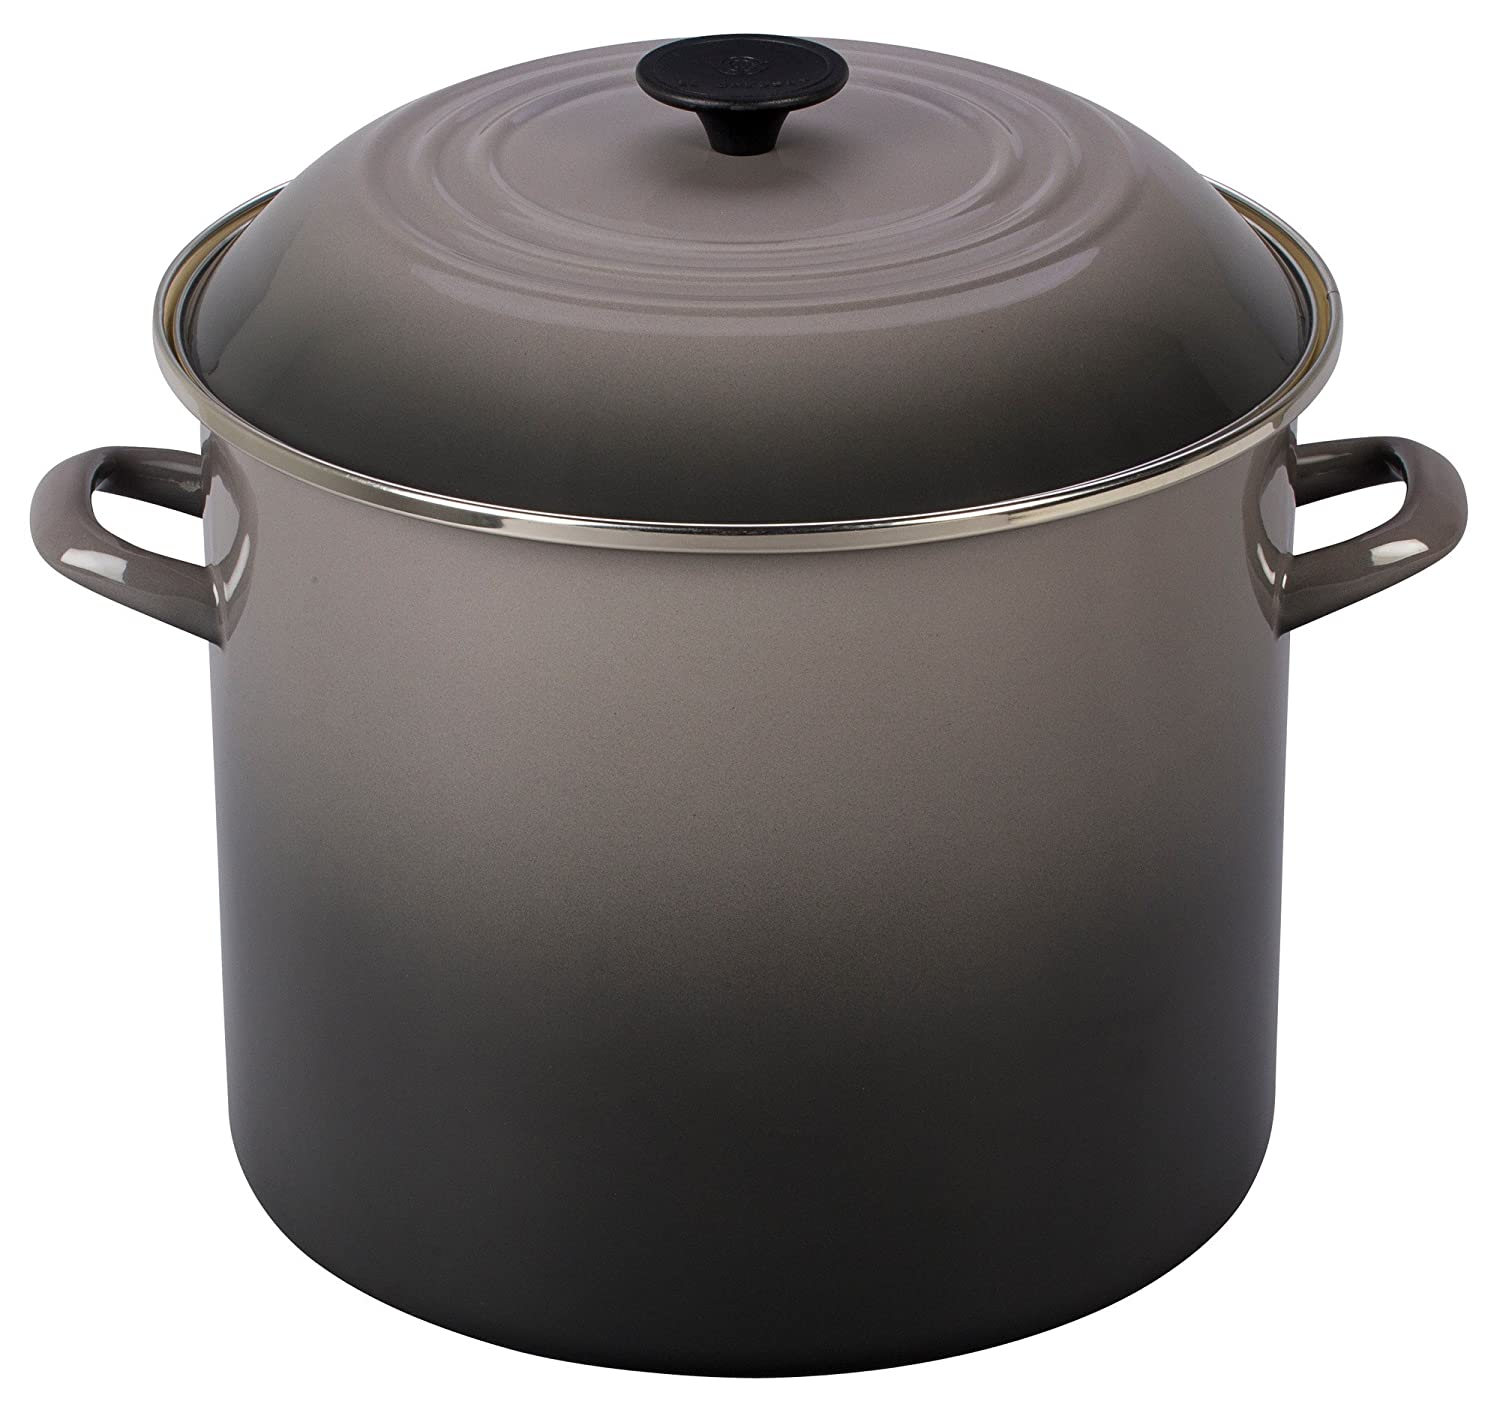 Le Creuset Enamel-on-Steel 16-Quart Covered Stockpot, Oyster